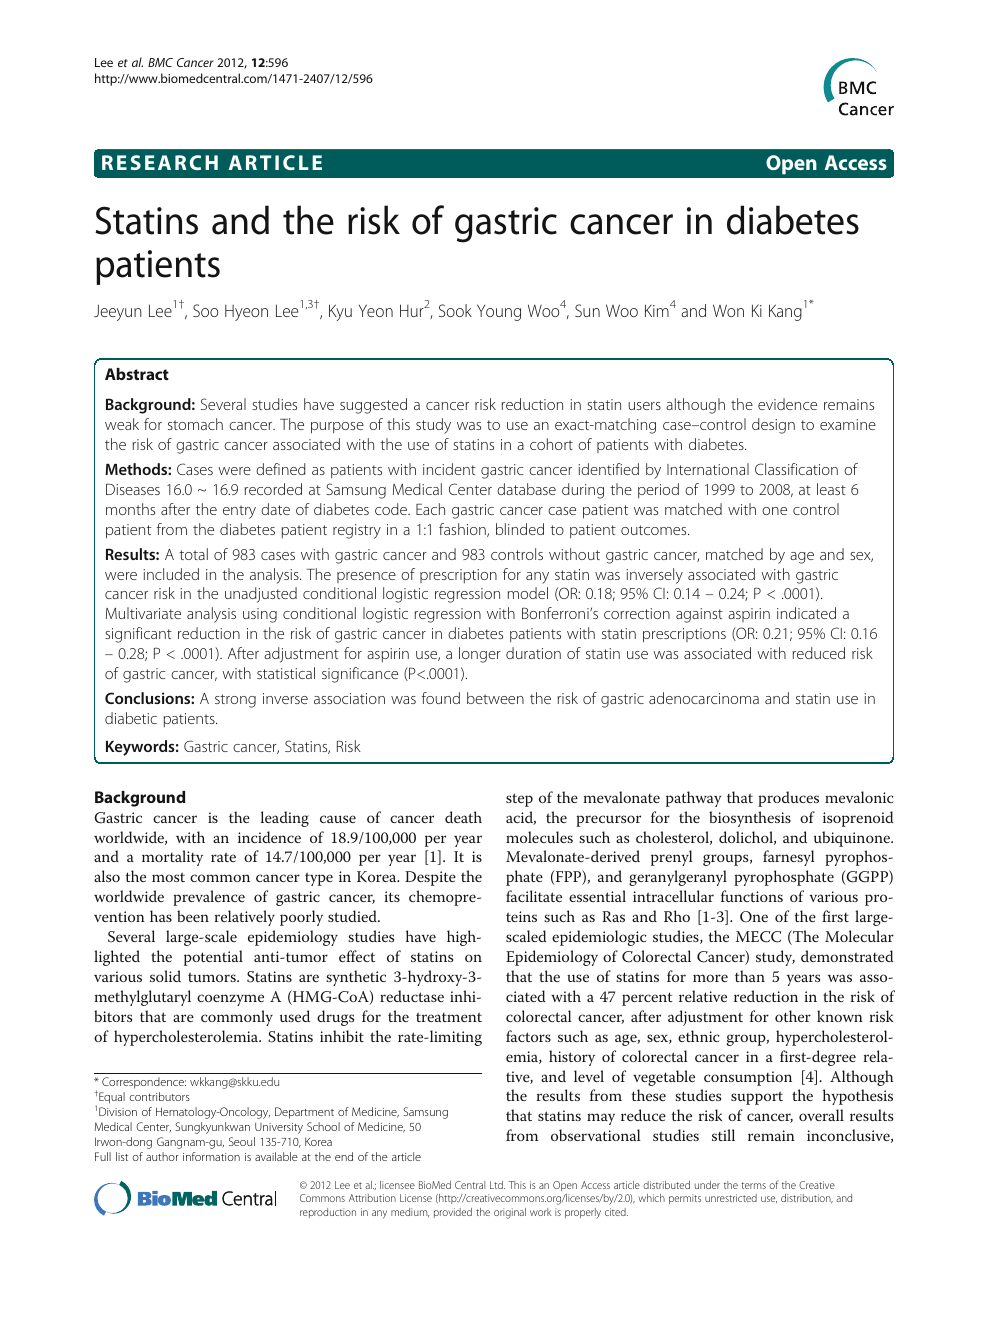 gastric cancer diabetes